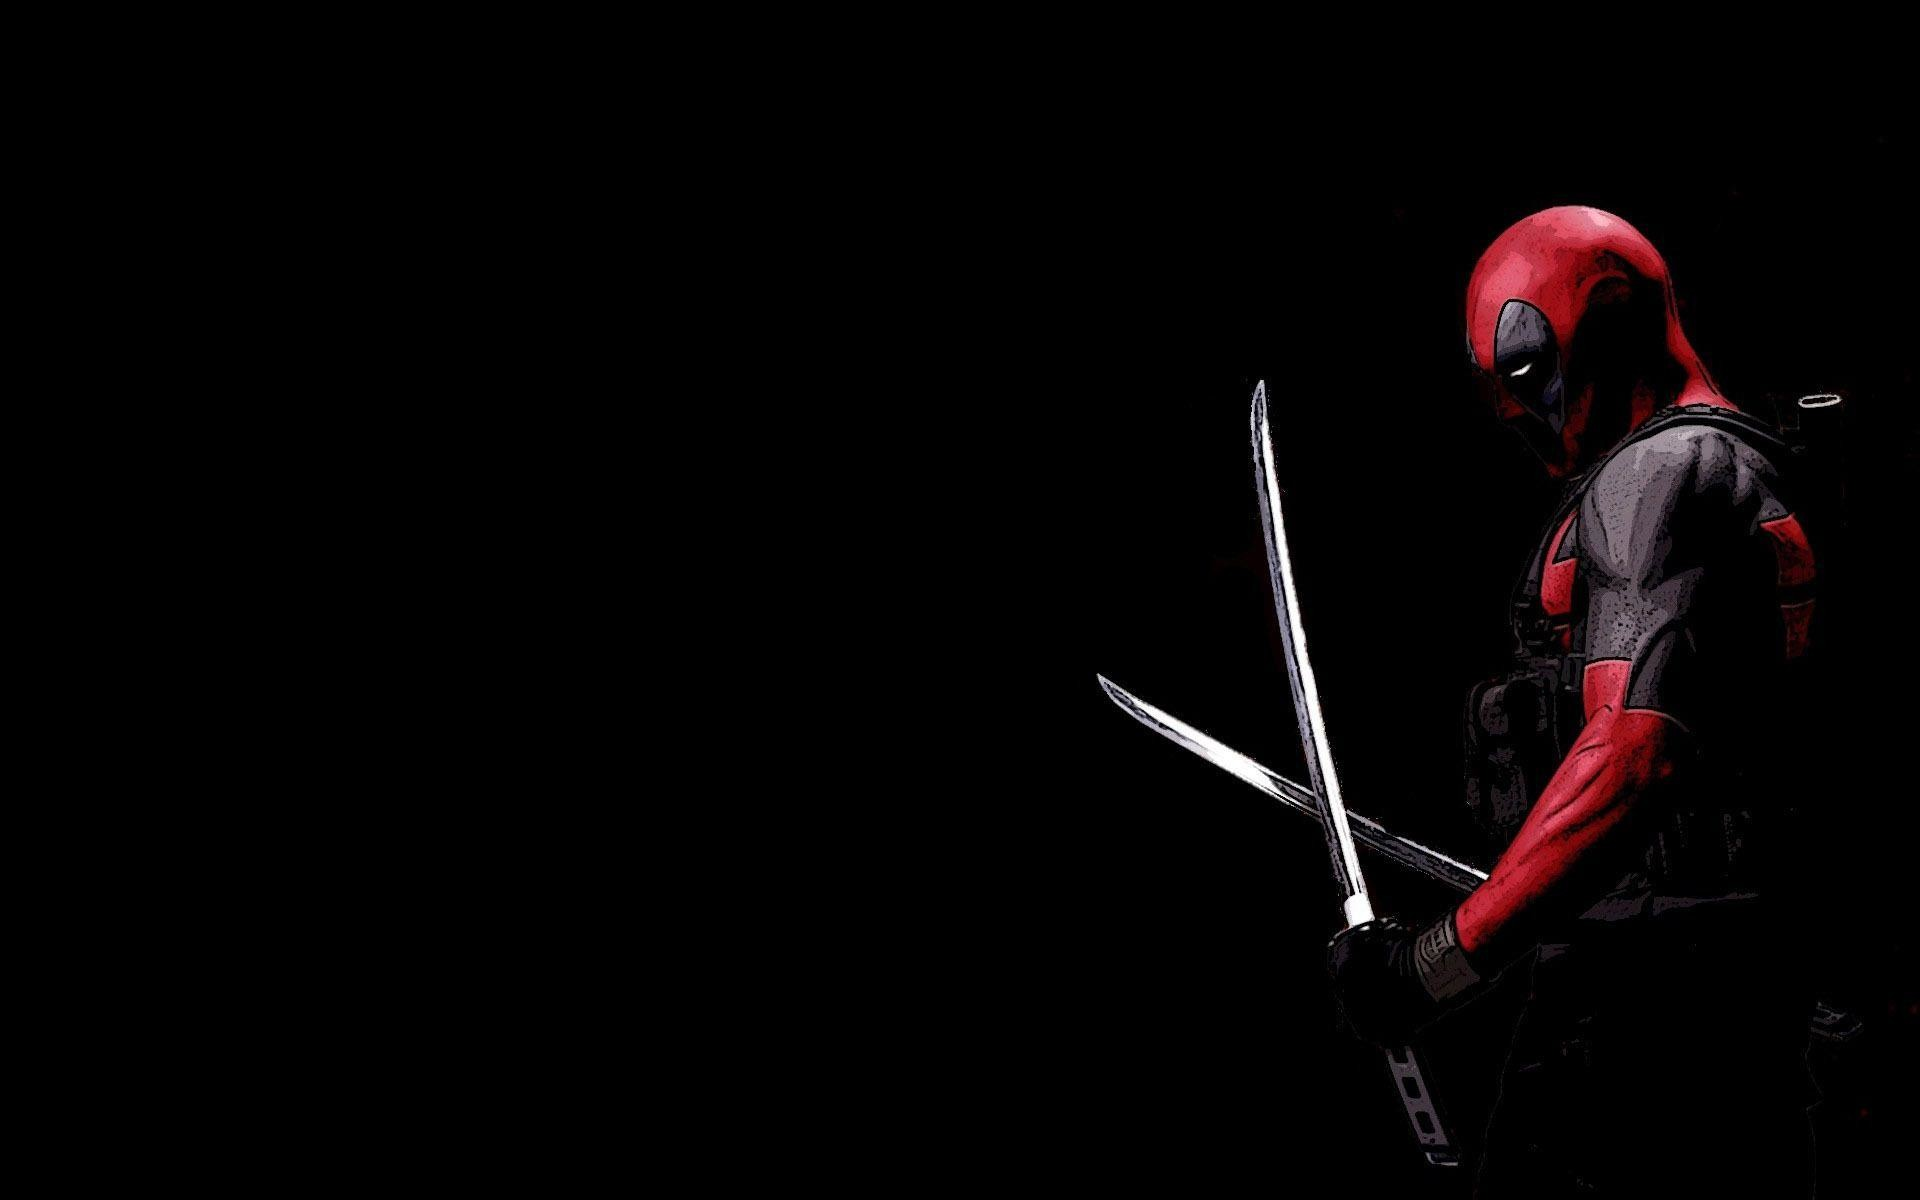 Deadpool Wallpapers   2017 Best Wallpaper Hd 3574   HD